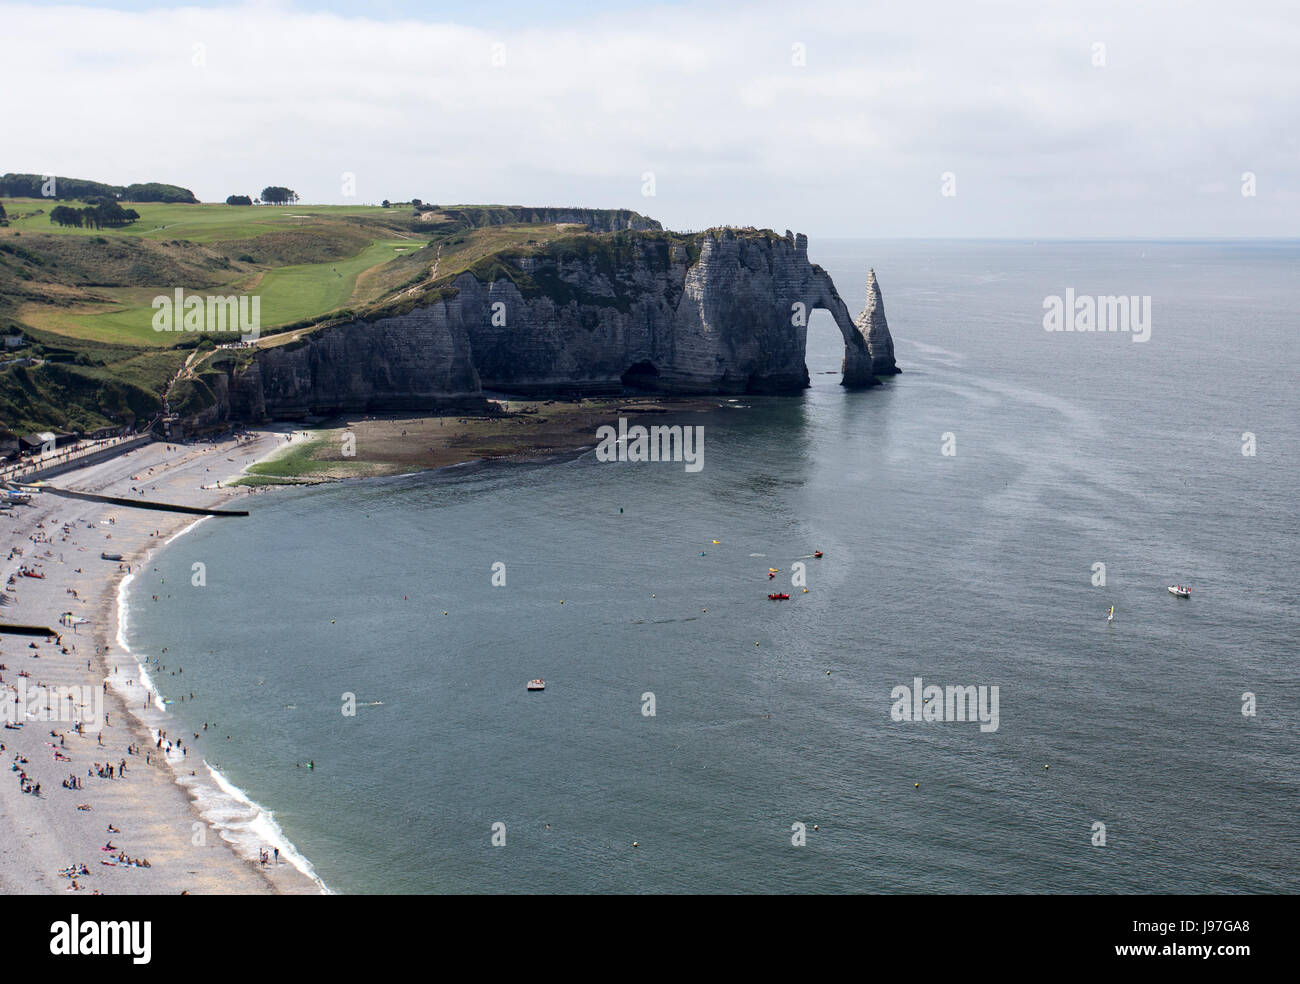 Etretat village, its bay beach and Aval cliff landmark Aerial view Normandy, France, Europe - Stock Image